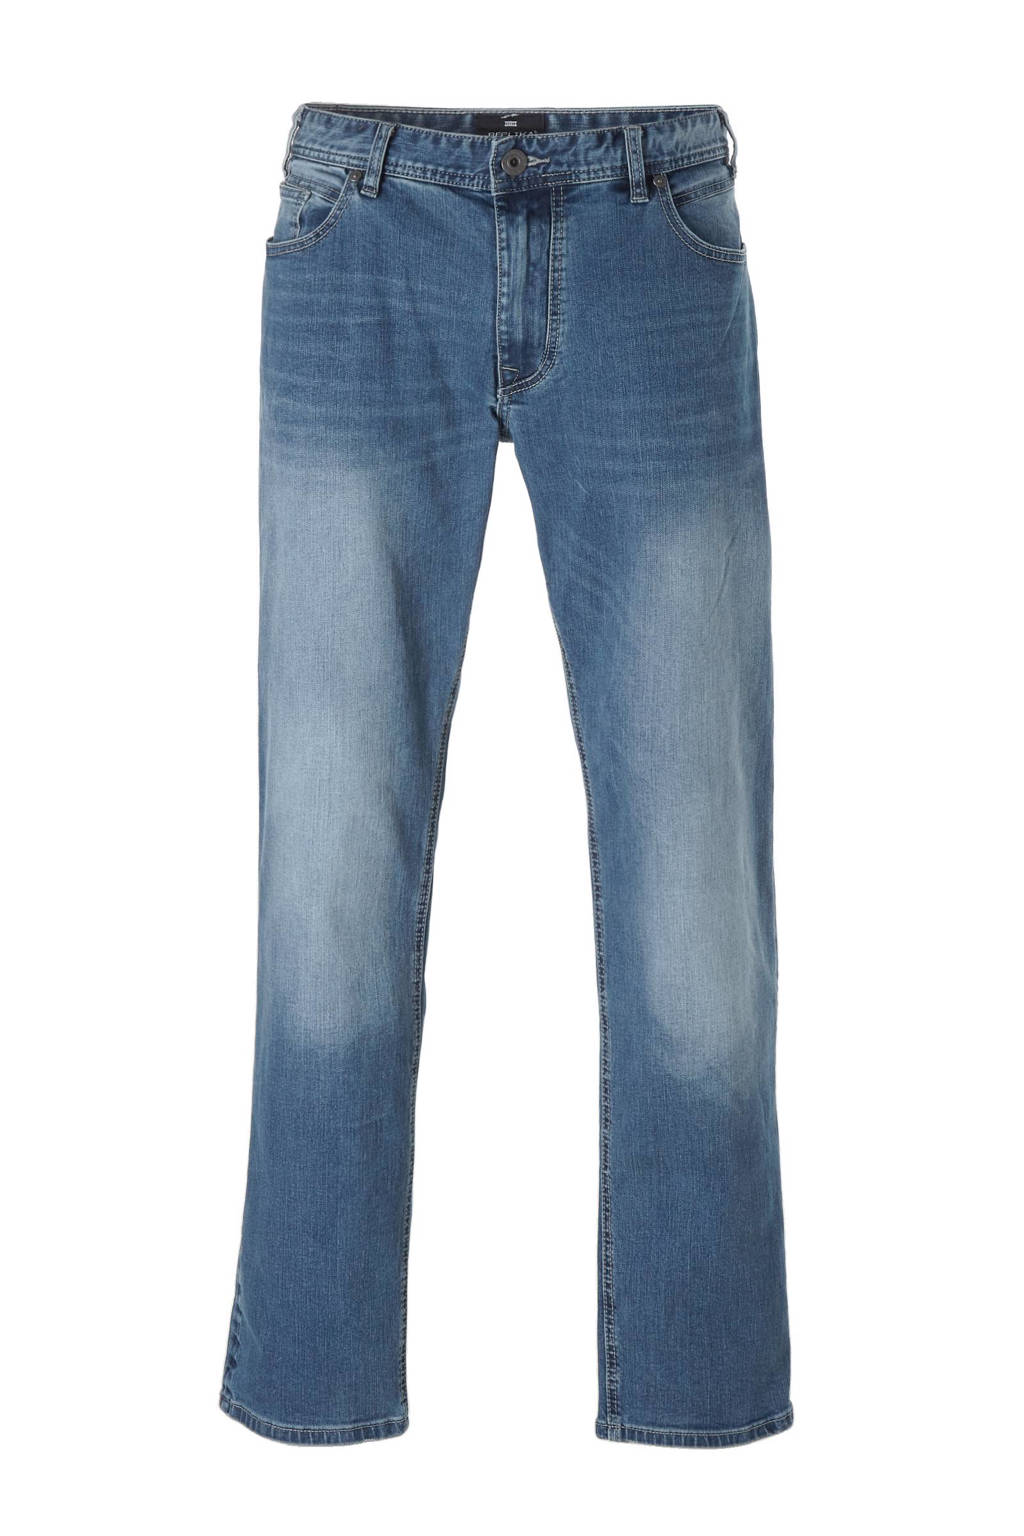 Replika +size straight fit jeans Ringo, 0597 Blue Used Wash